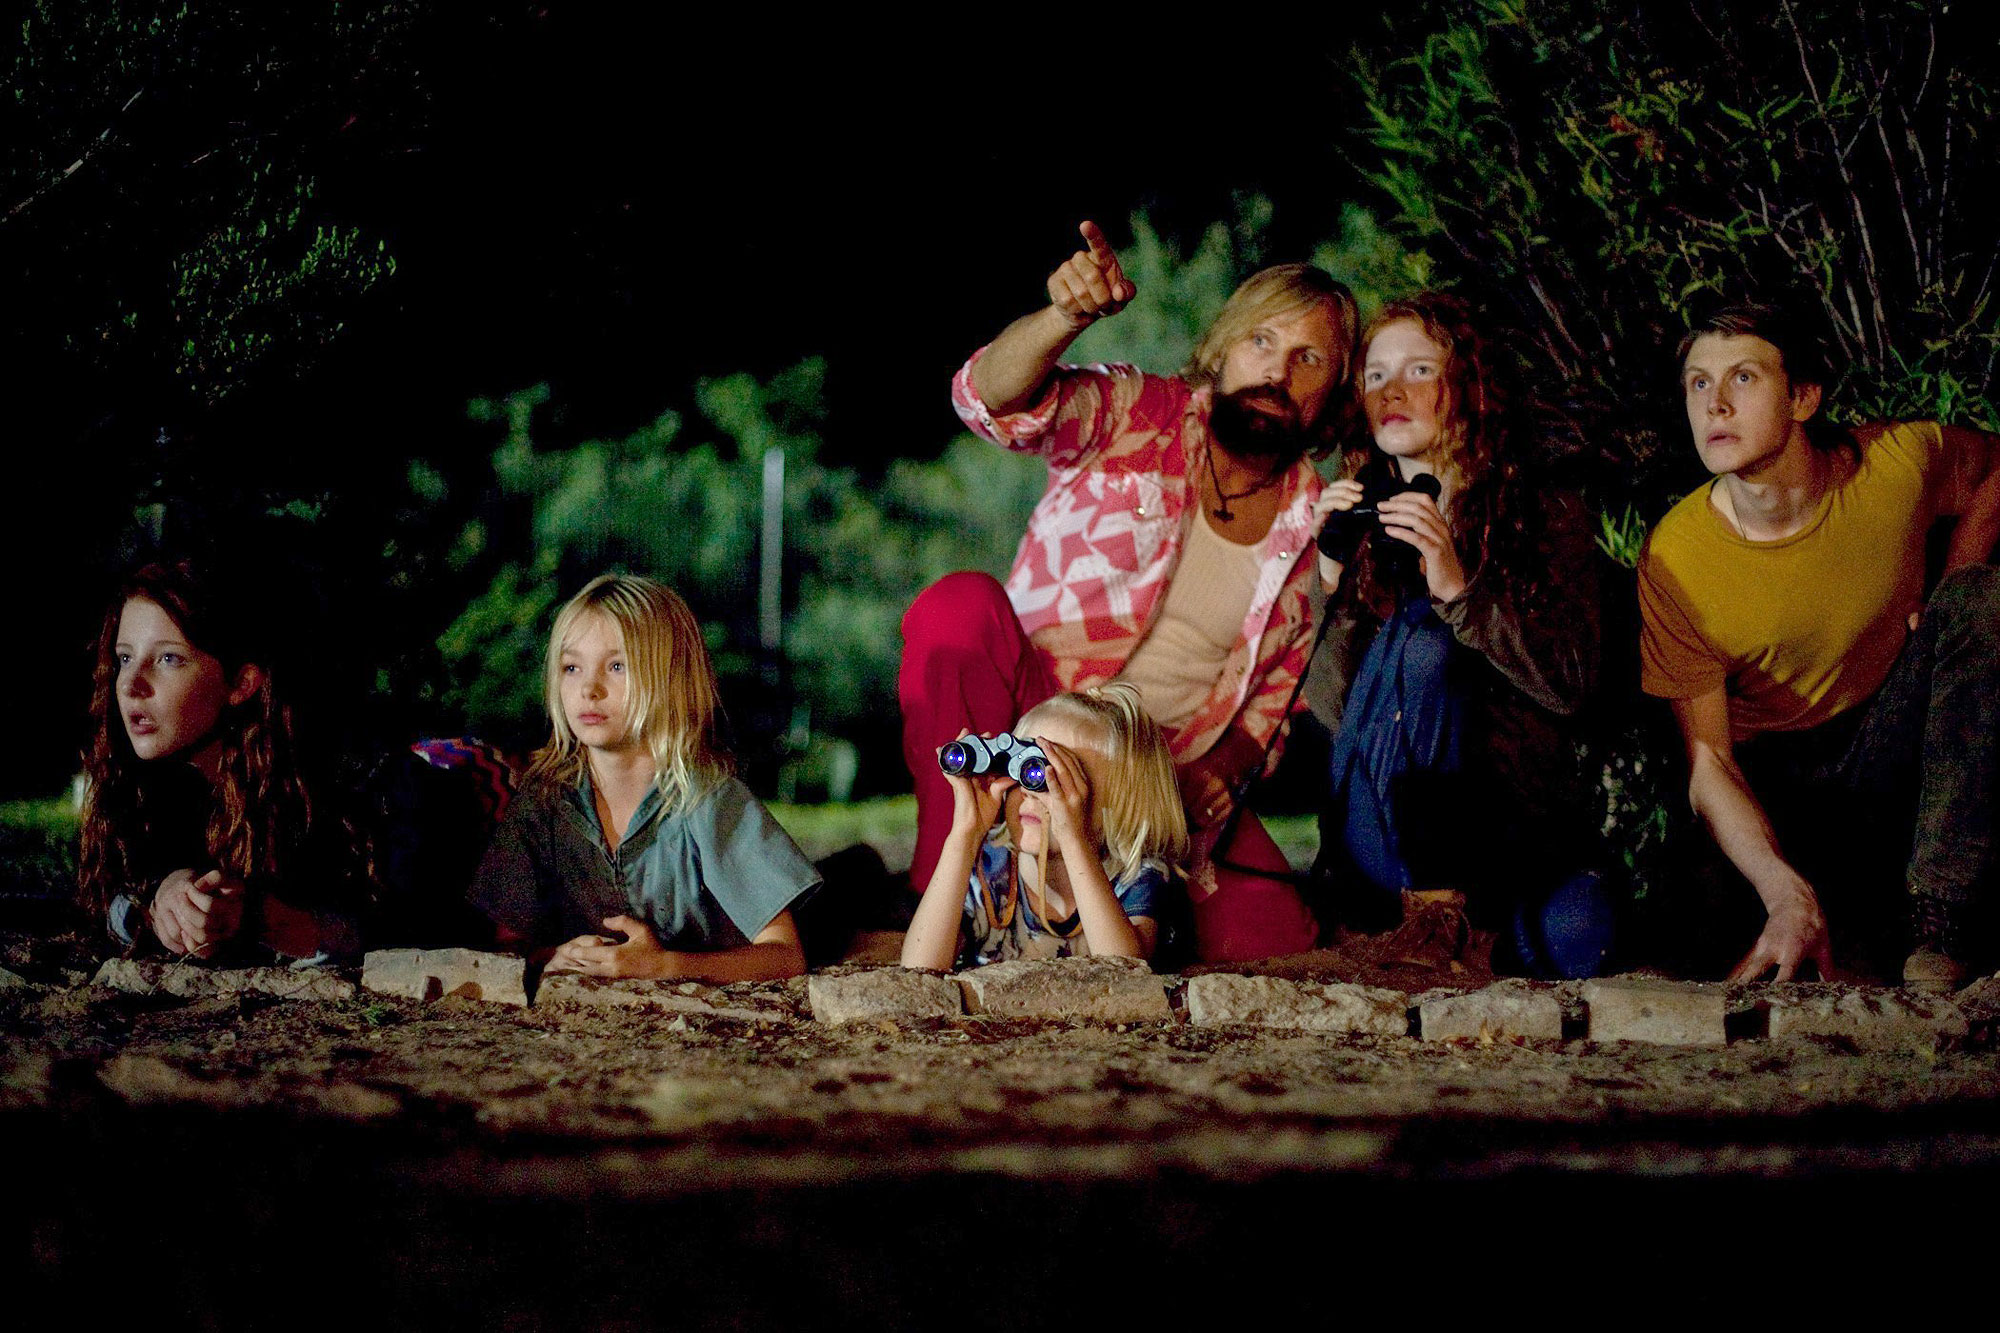 CAPTAIN FANTASTIC, from left: Samantha Isler, Shree Crooks, Viggo Mortensen, Charlie Shotwell,